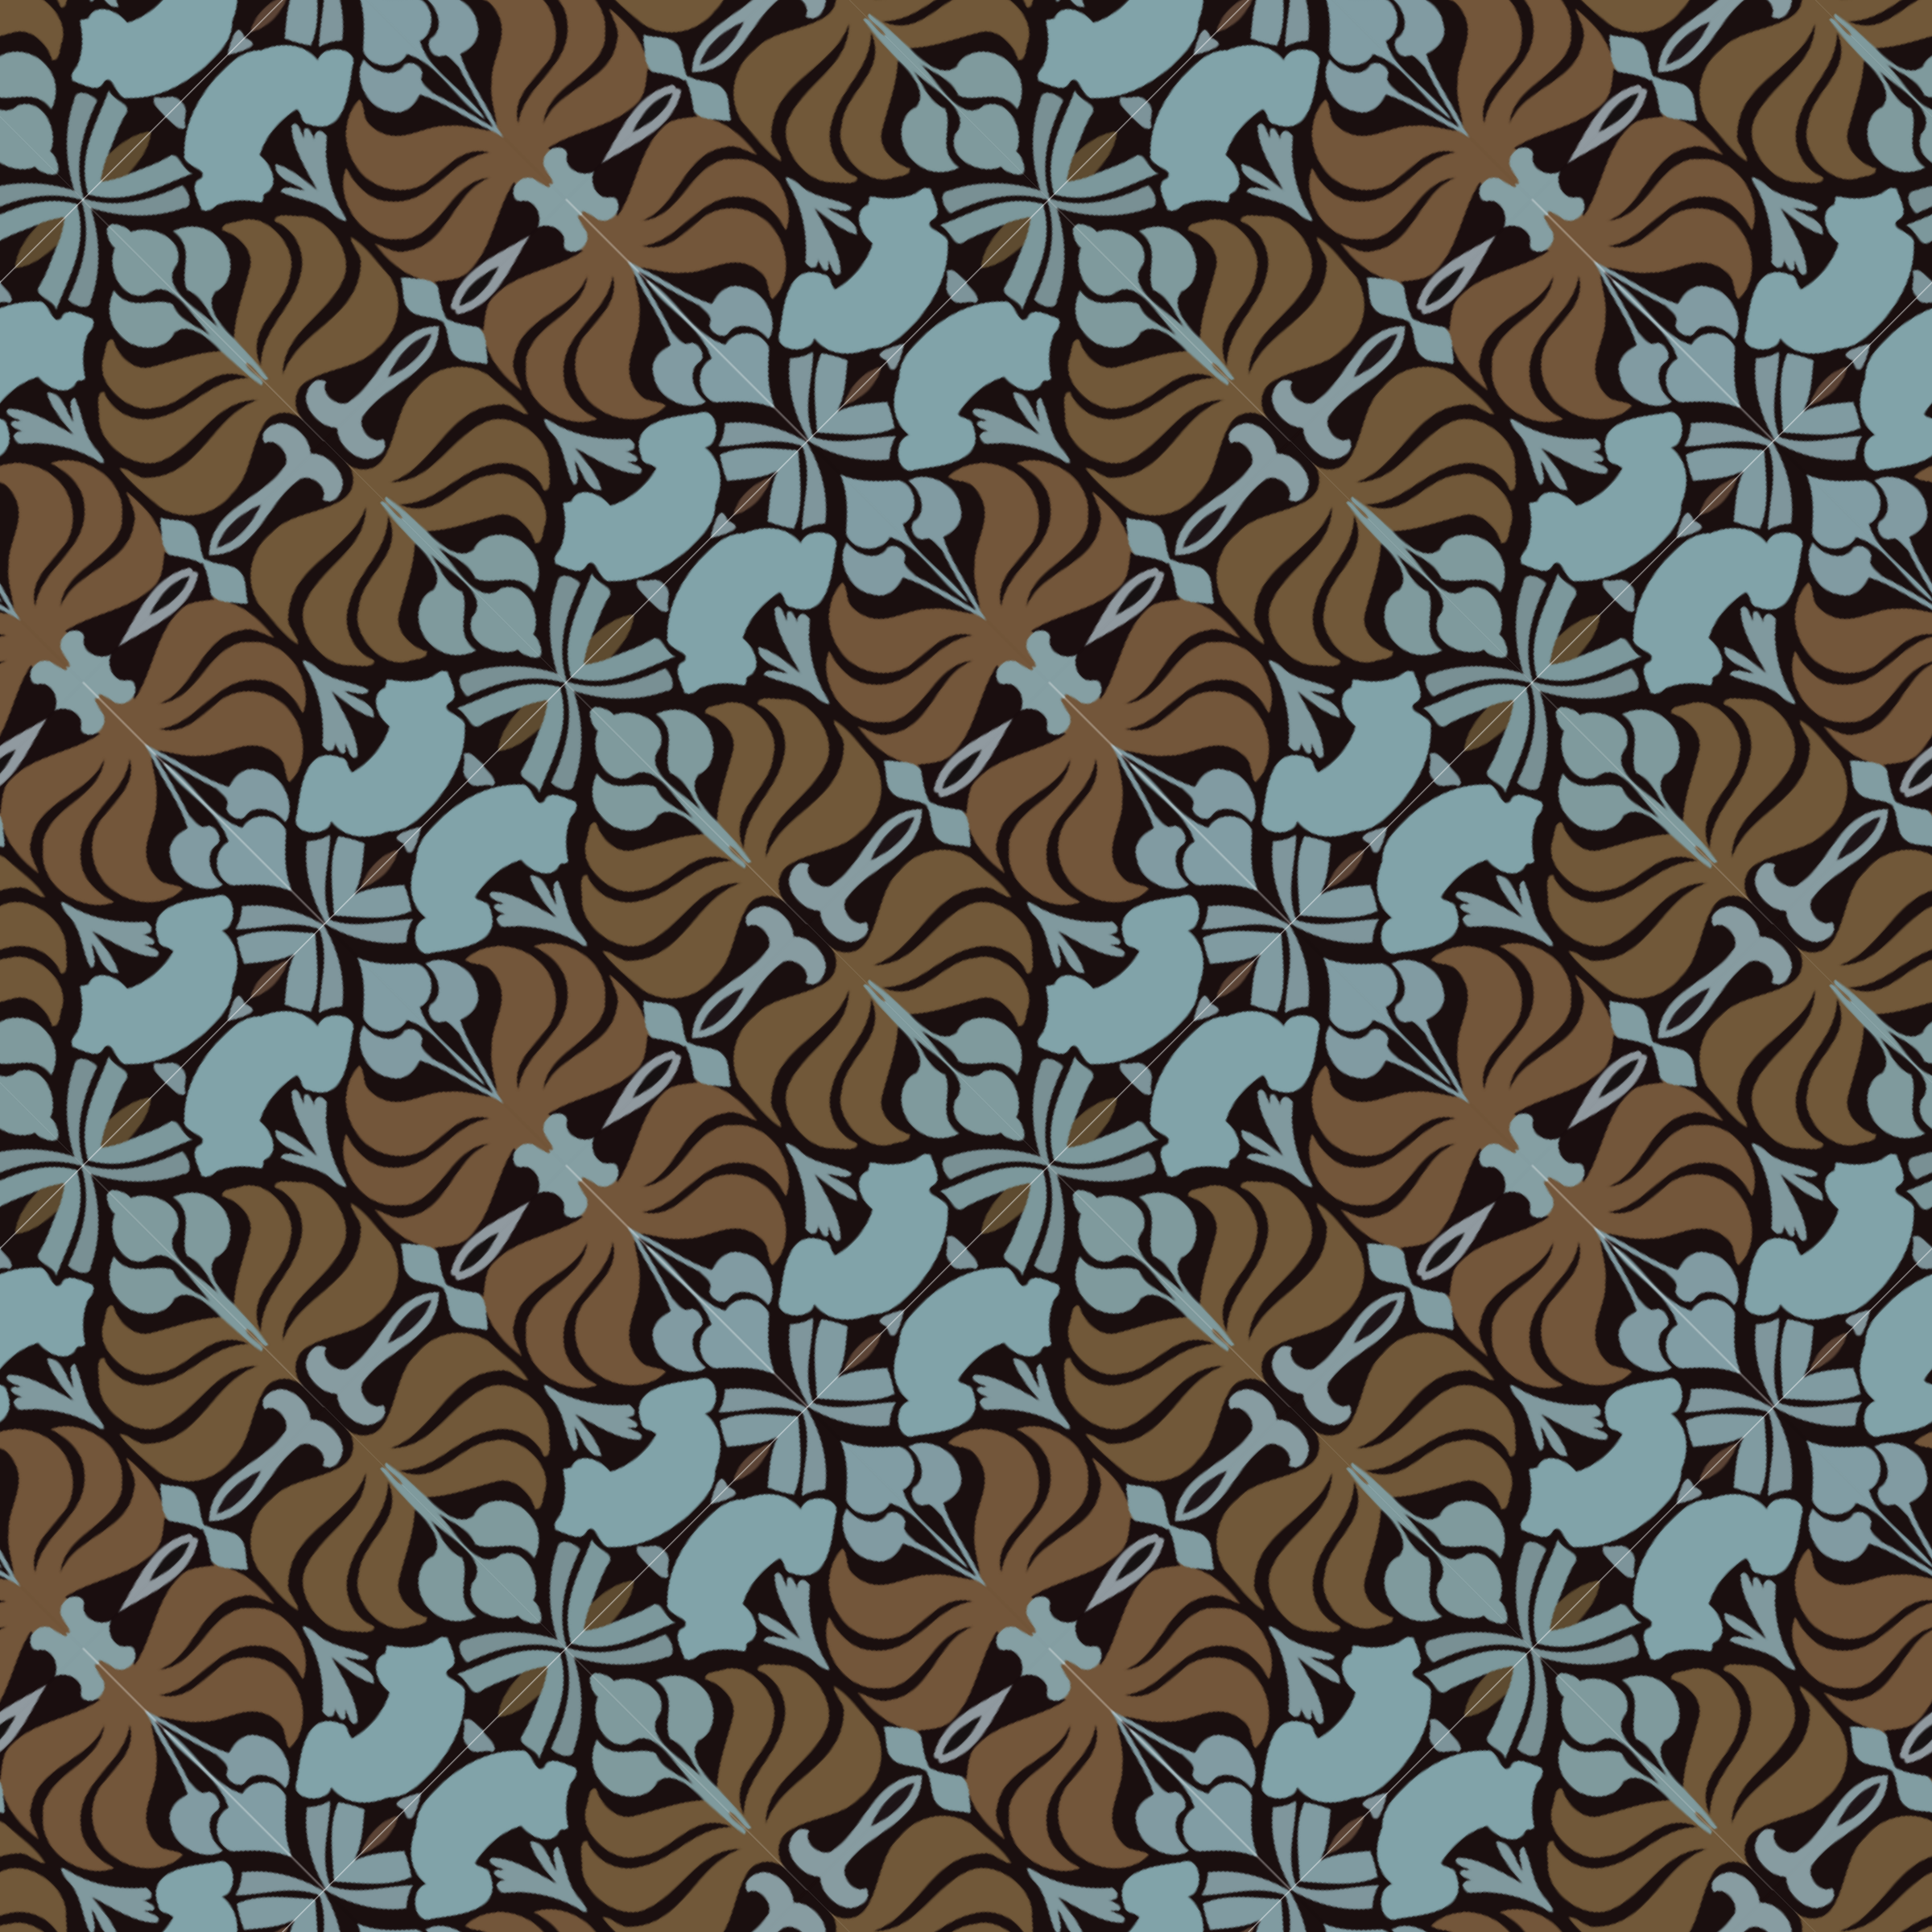 Background pattern 167 (colour 6) by Firkin